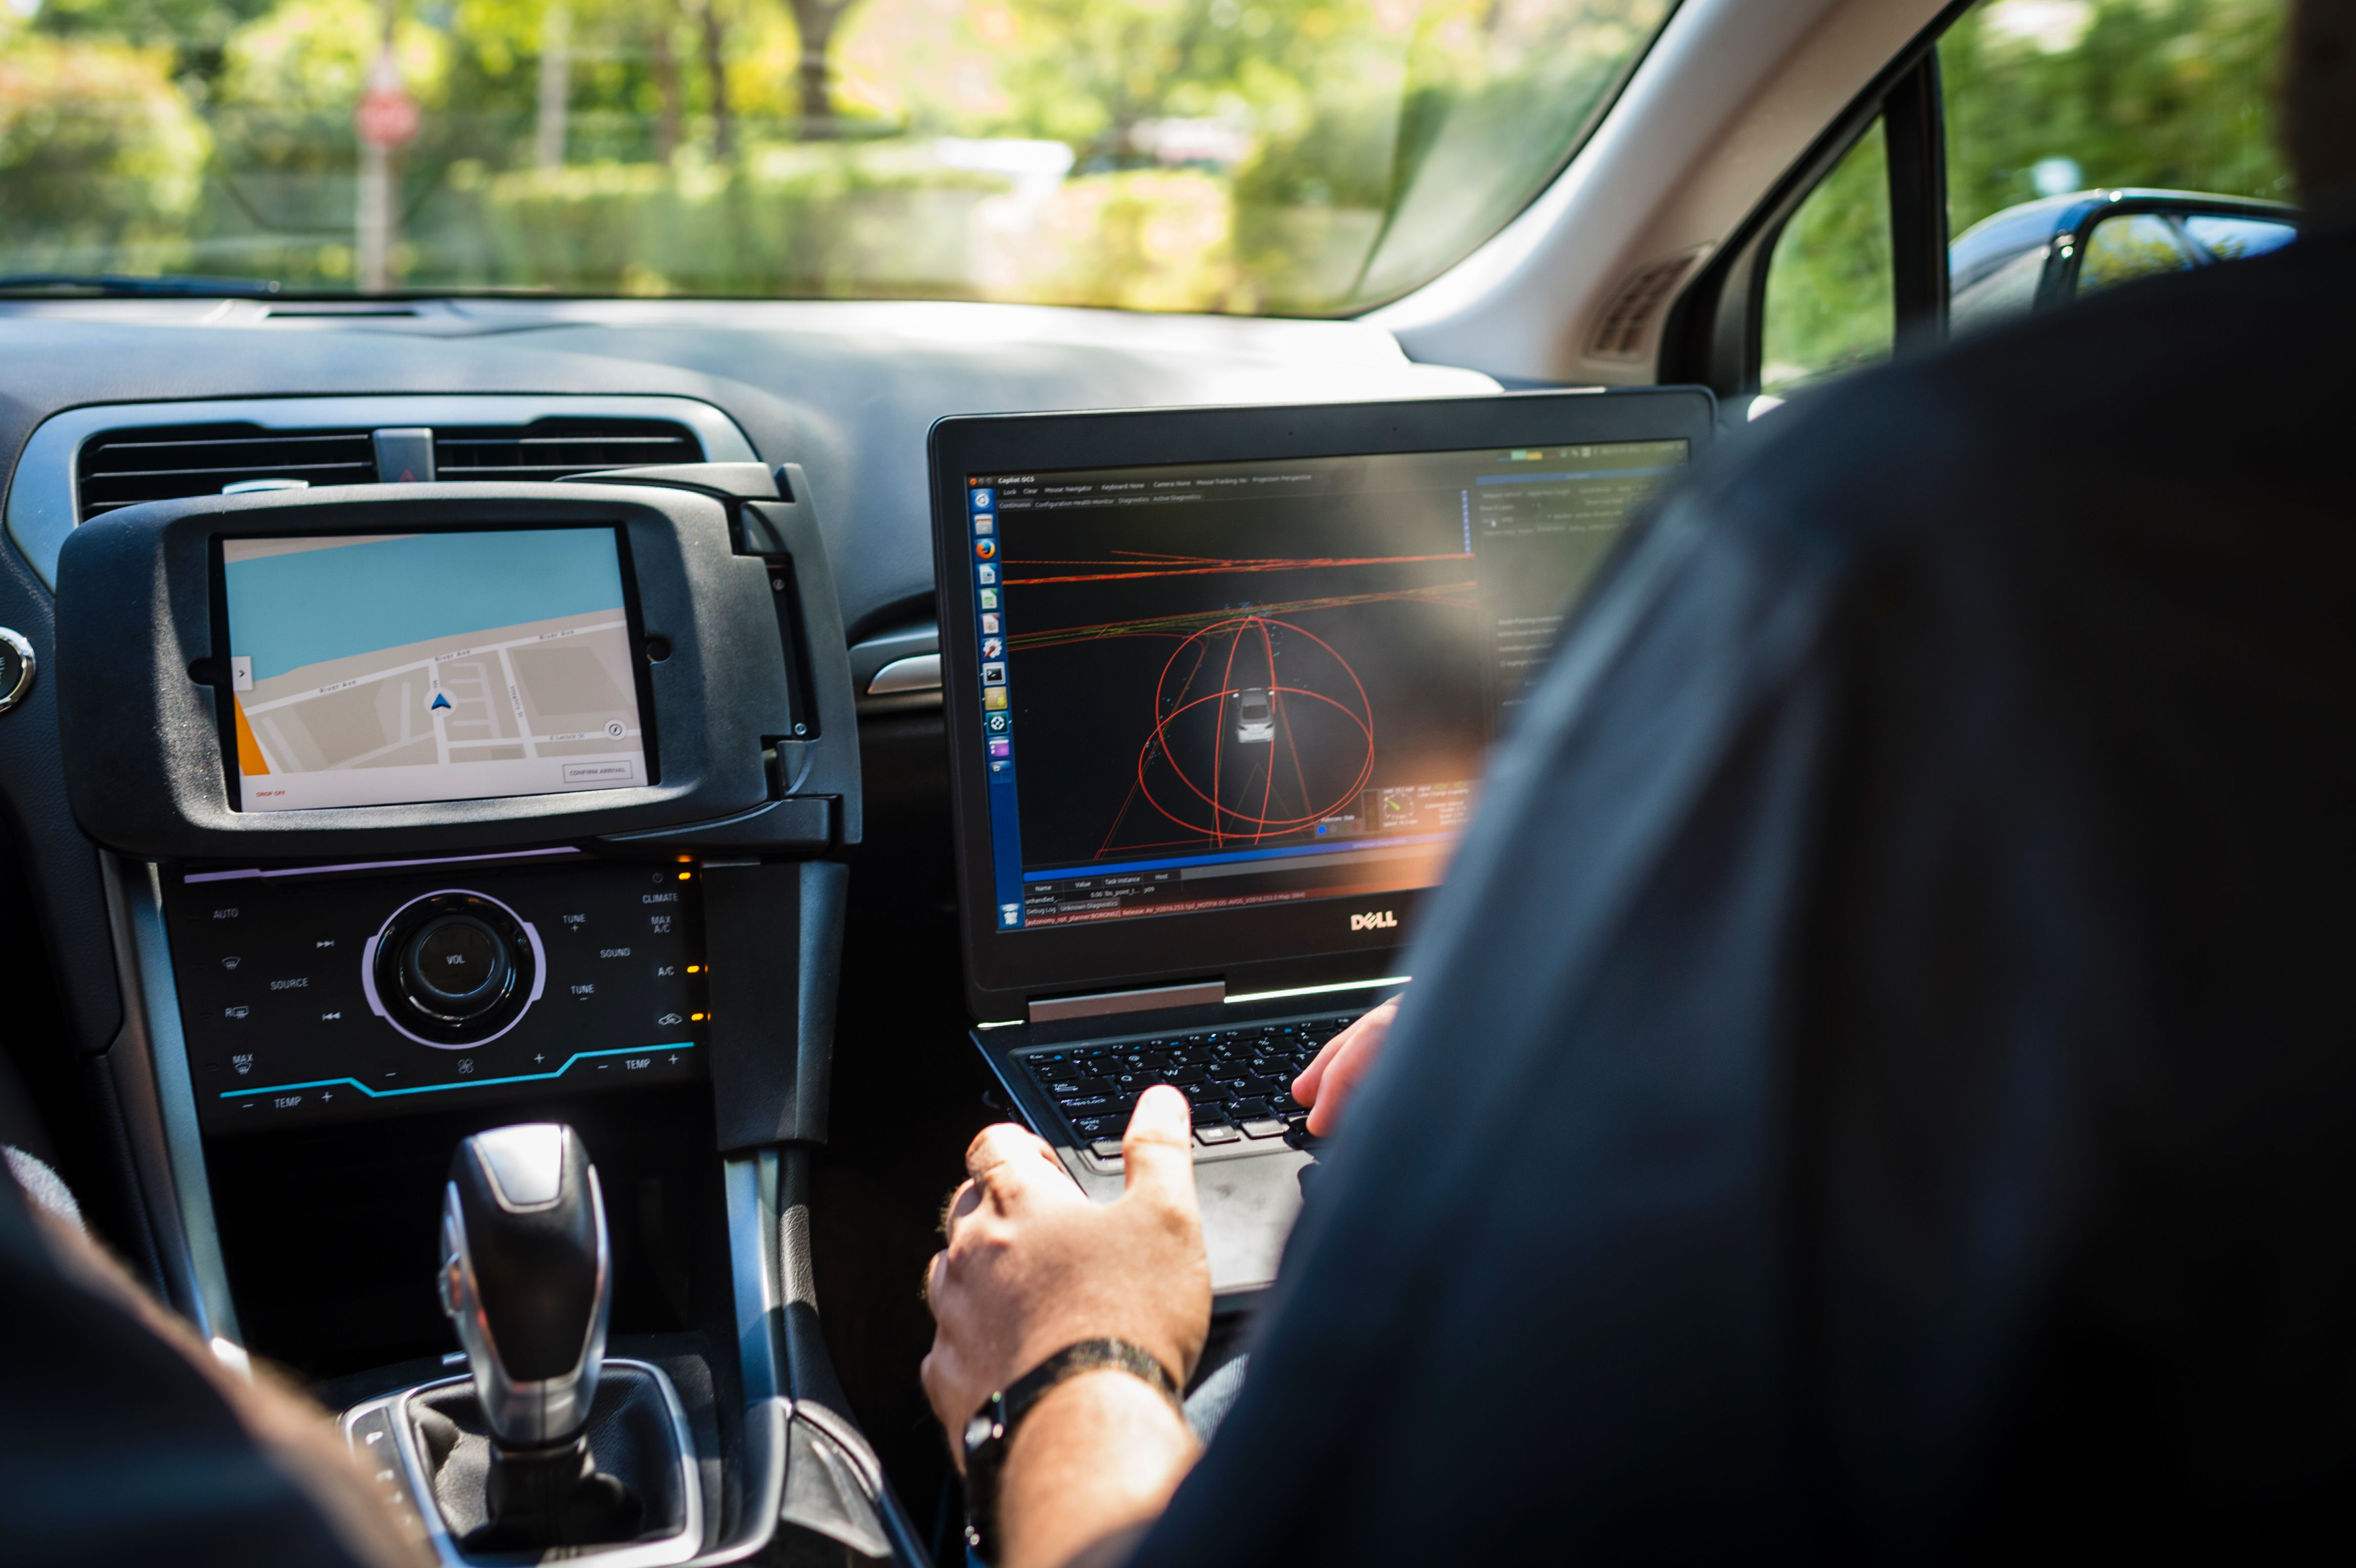 A technician sits in an Uber self-driving car on September 13, 2016 in Pittsburgh, Pennsylvania.